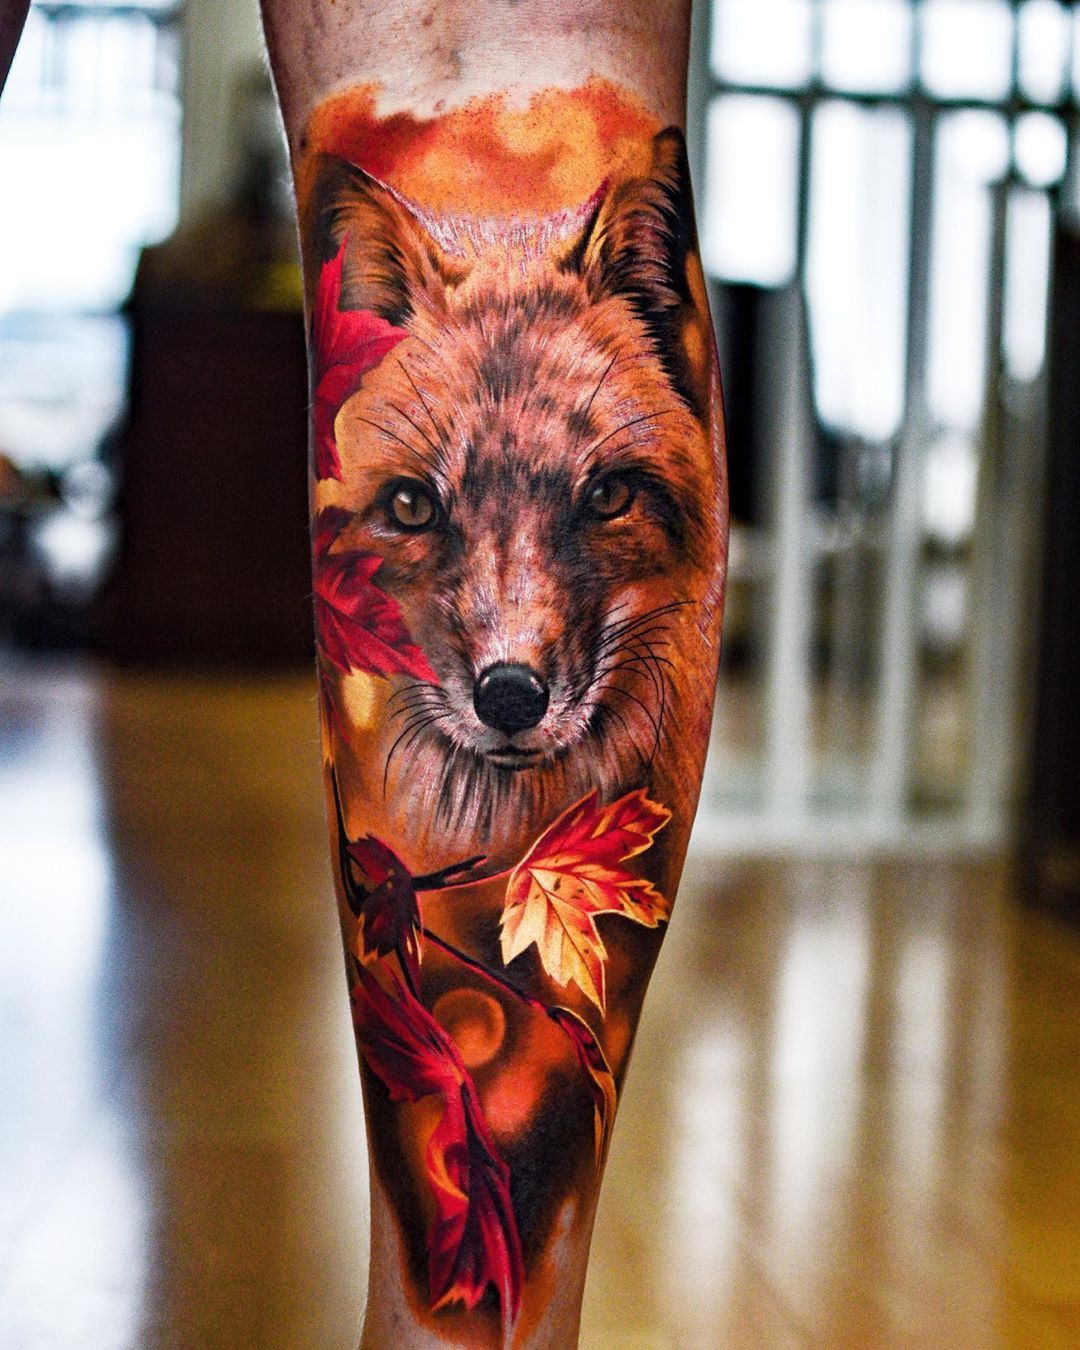 Colour Realism Leg Tattoo Realismtattoo Colourtattoo Skingiants Tattooist Tattoolove Tattooed Tatt Fox Tattoo Design Fox Tattoo Watercolor Fox Tattoos